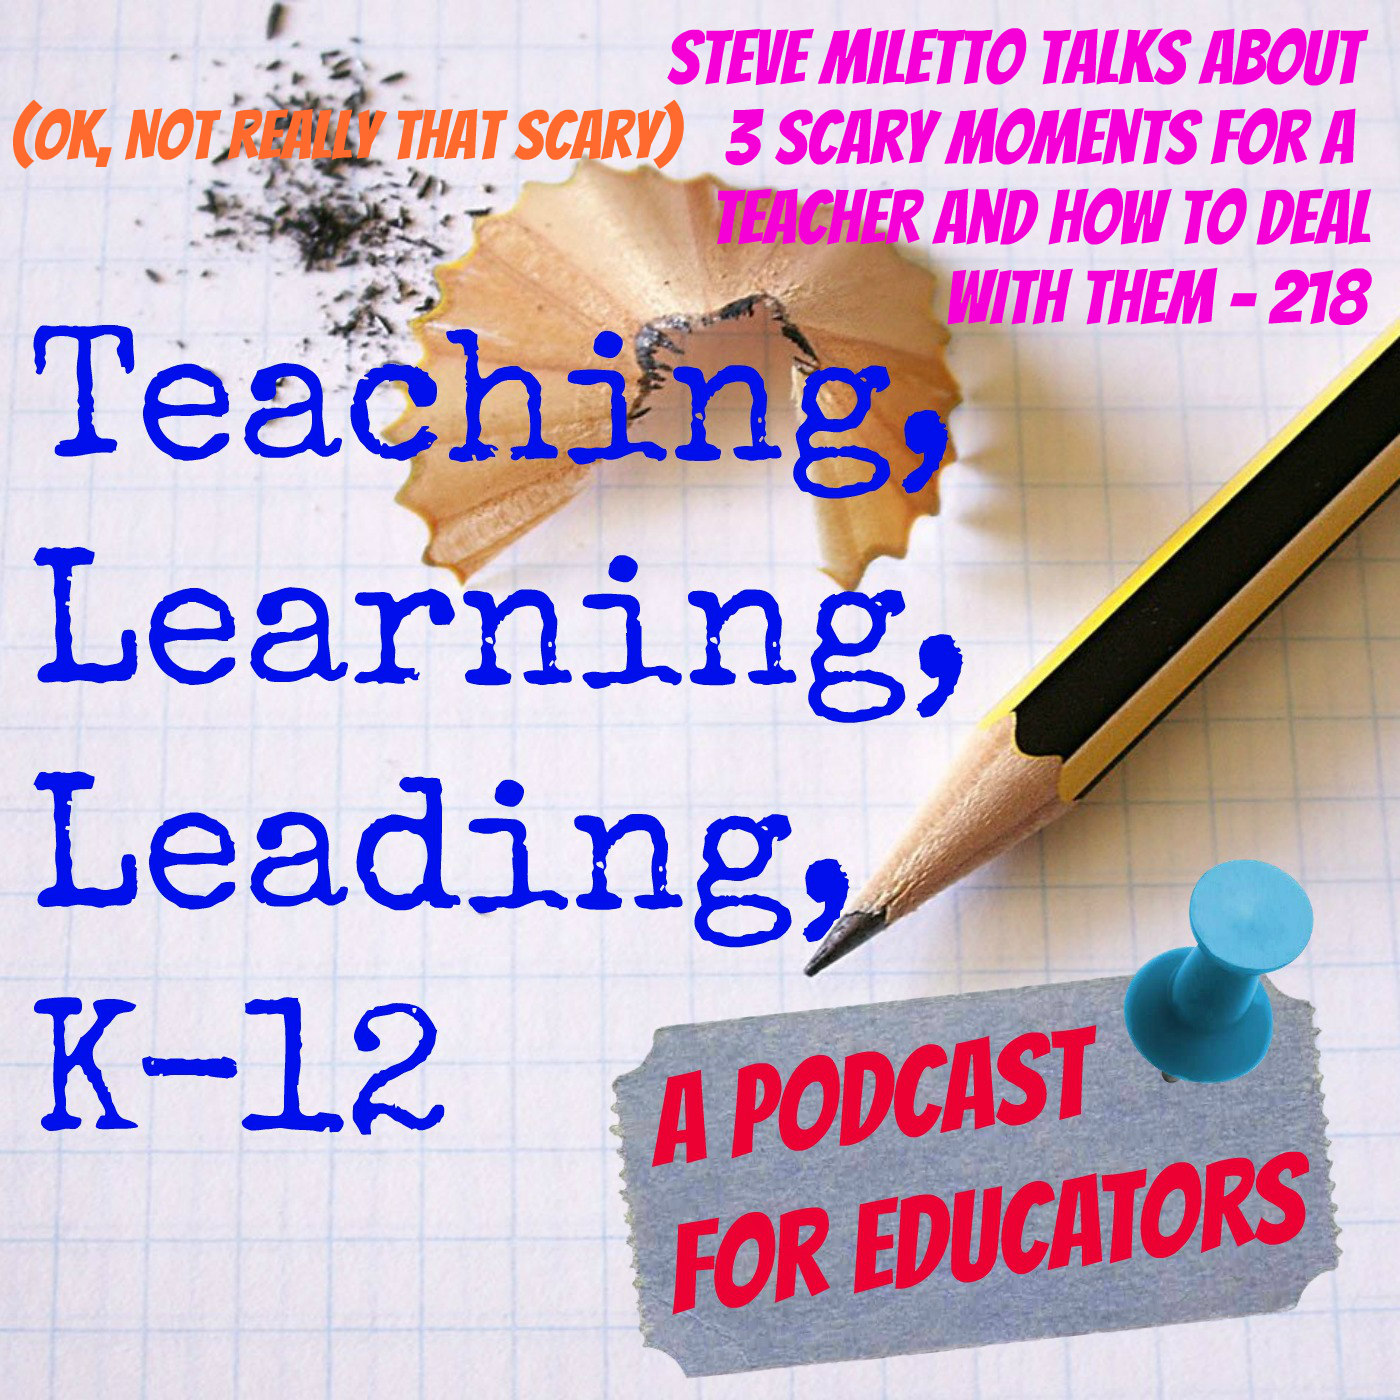 Steve Miletto talks about 3 Scary (ok, not really scary) moments for a teacher - 218